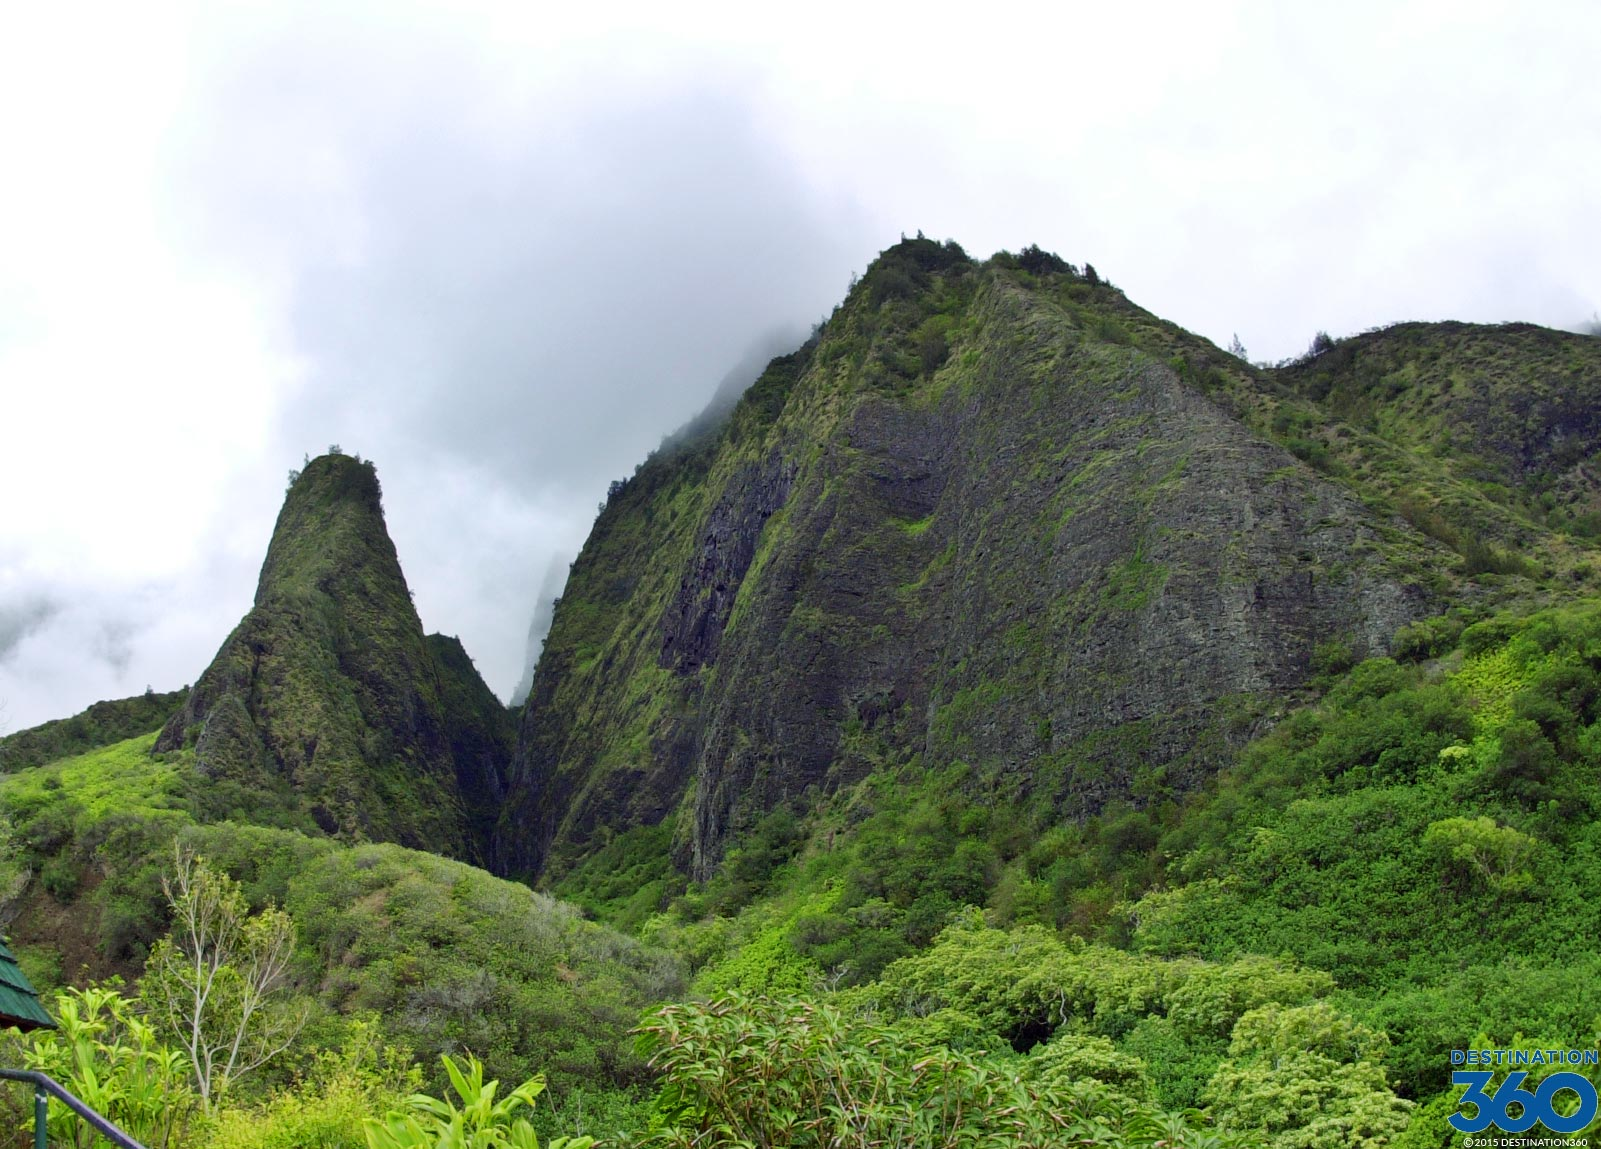 Iao Valley - Iao Valley State Park